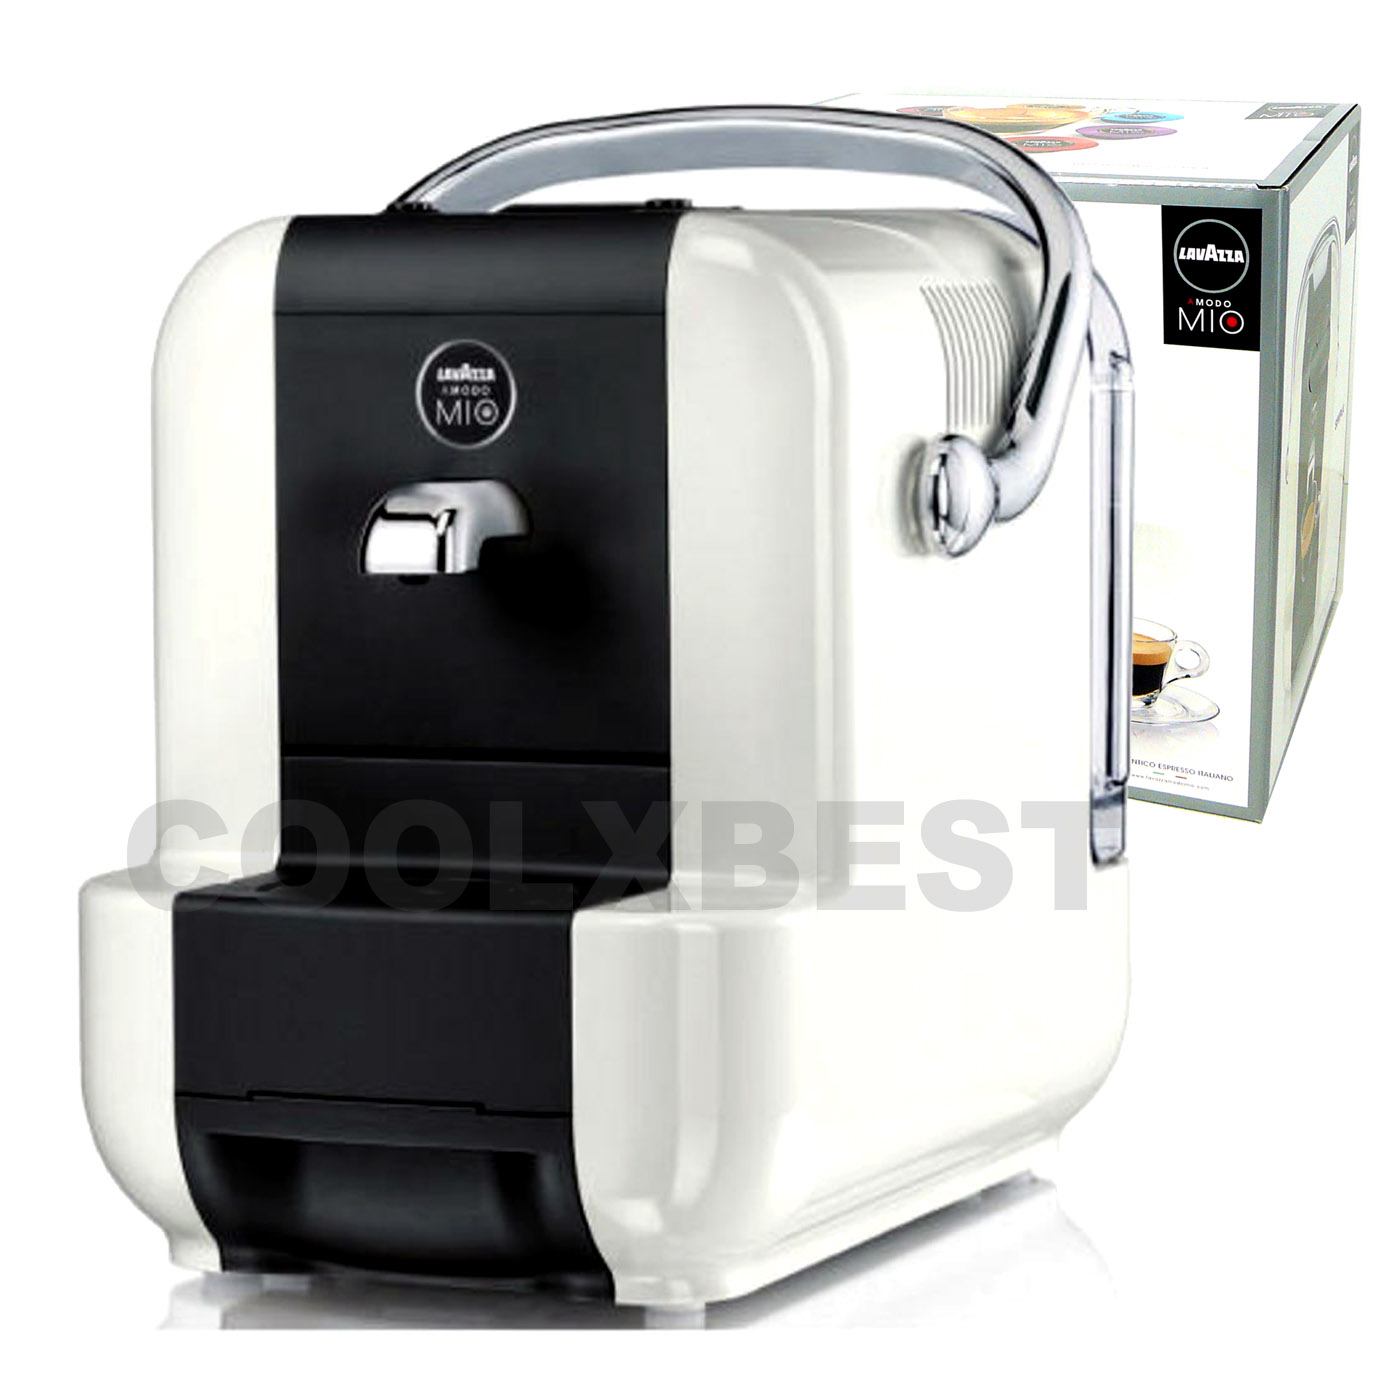 new saeco lavazza a modo mio simpla espresso coffee machine bonus capsules ebay. Black Bedroom Furniture Sets. Home Design Ideas